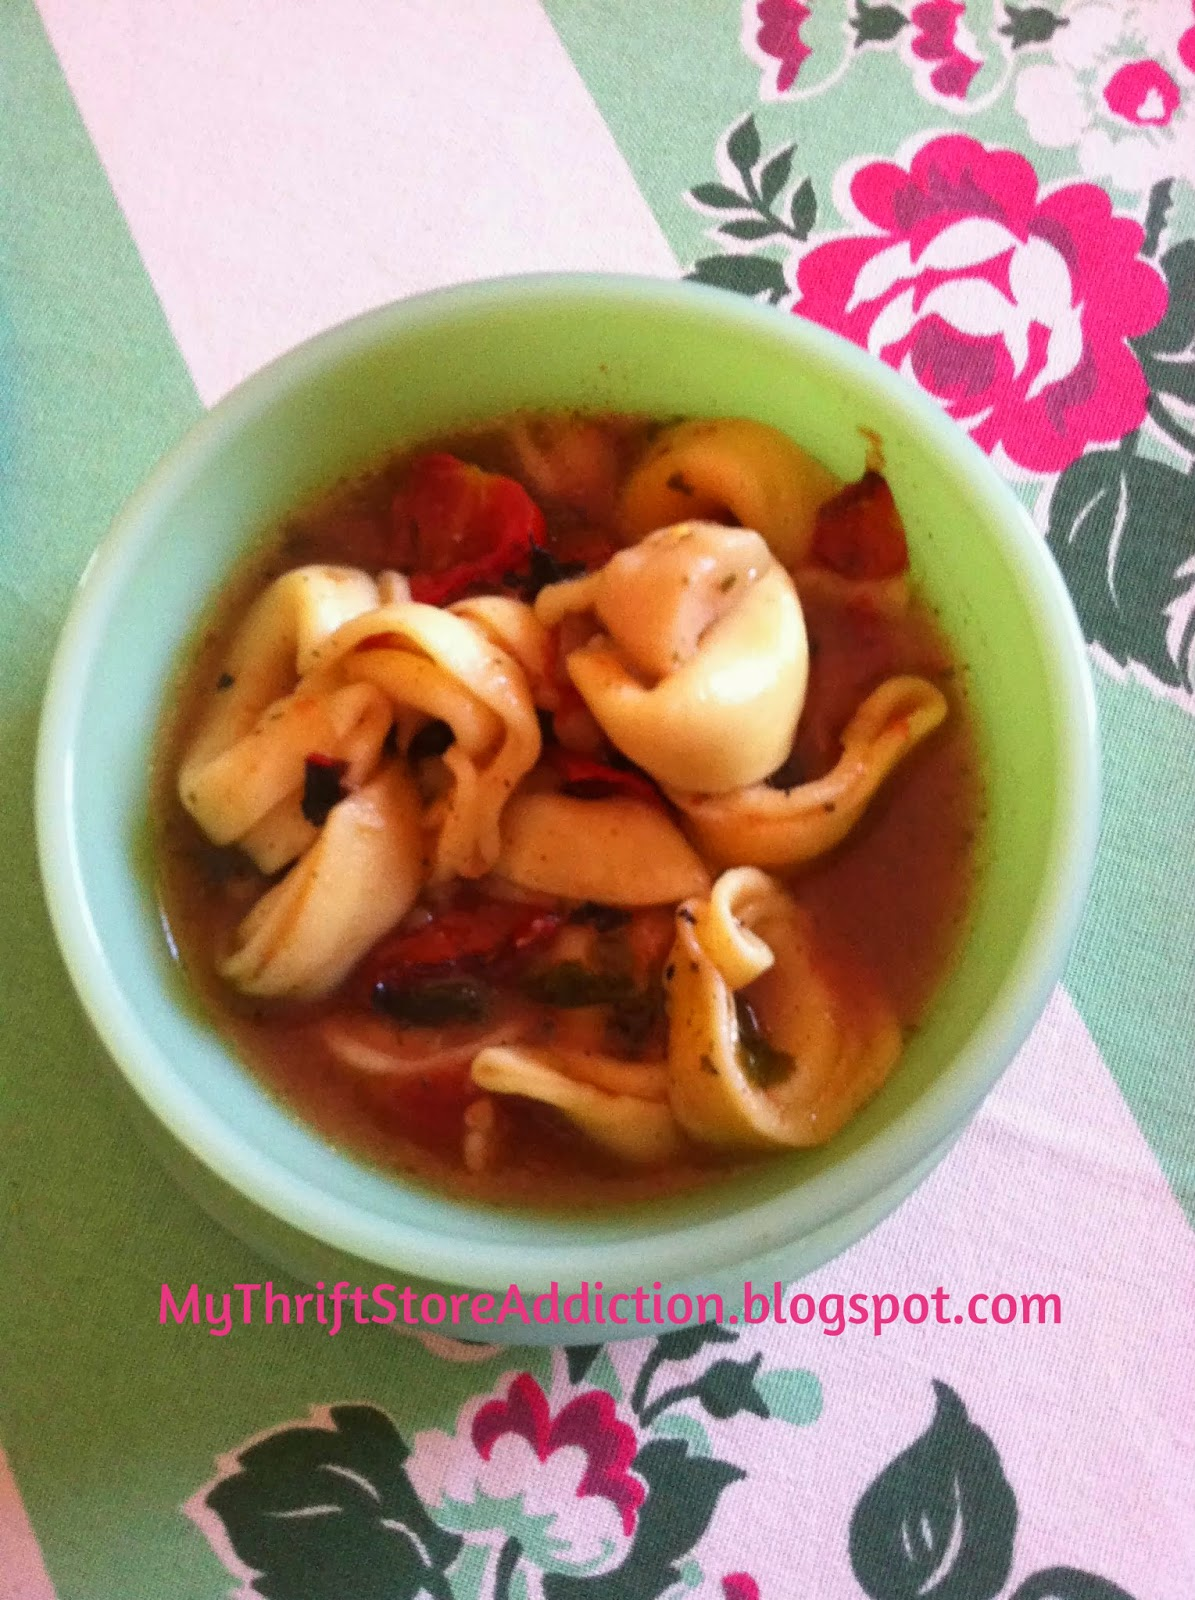 Tortellini spinach and mushroom soup